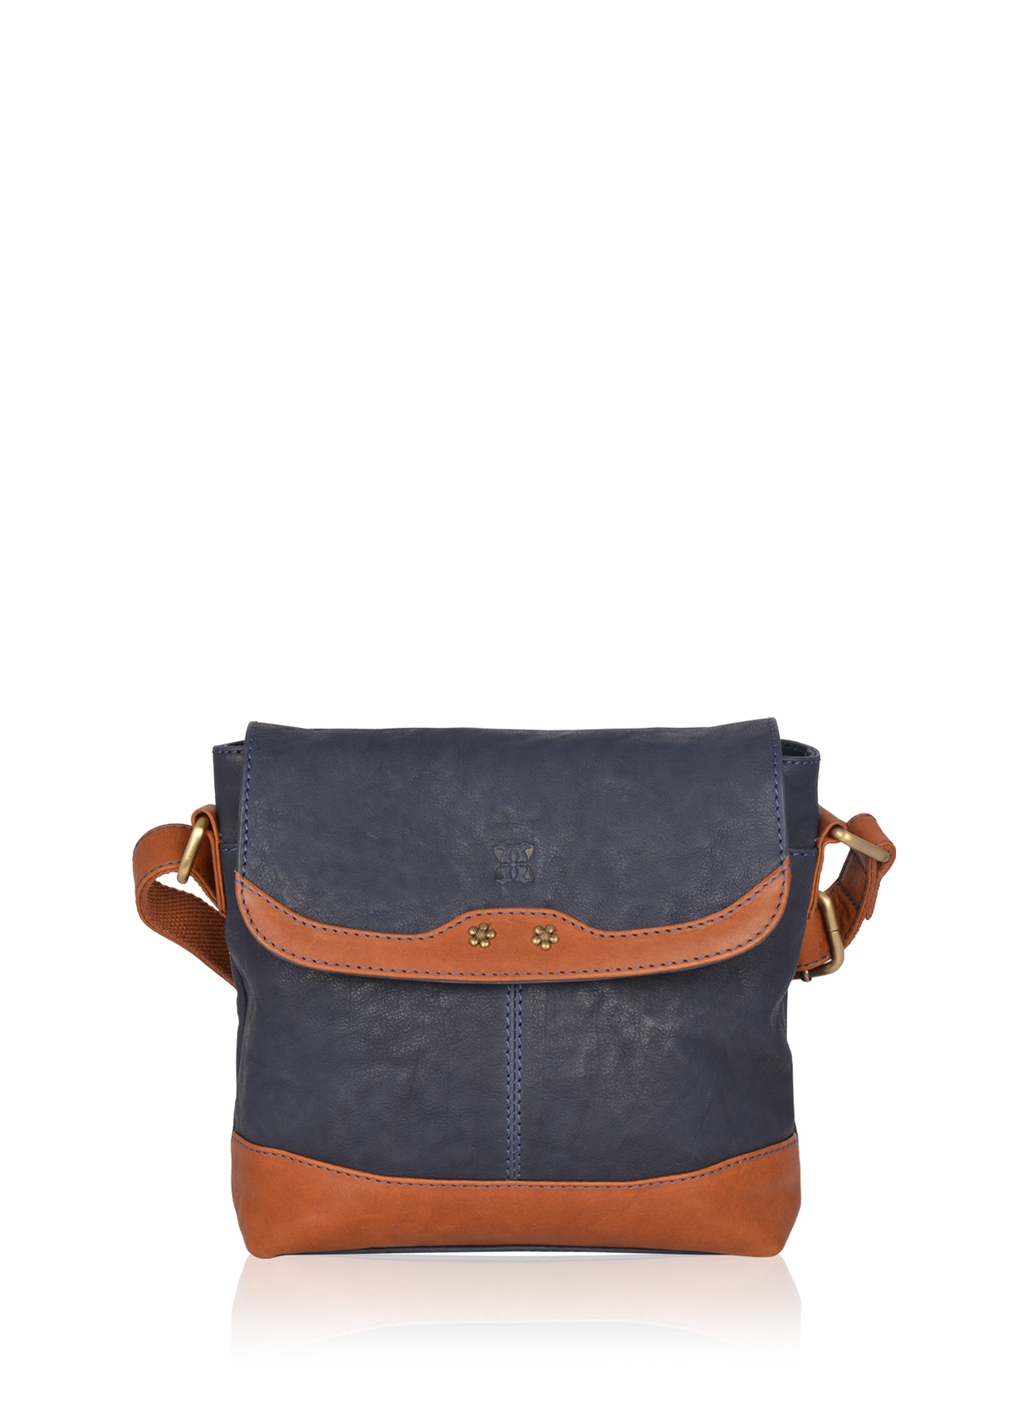 Hartsop Flapover Leather Cross Body Bag in Navy